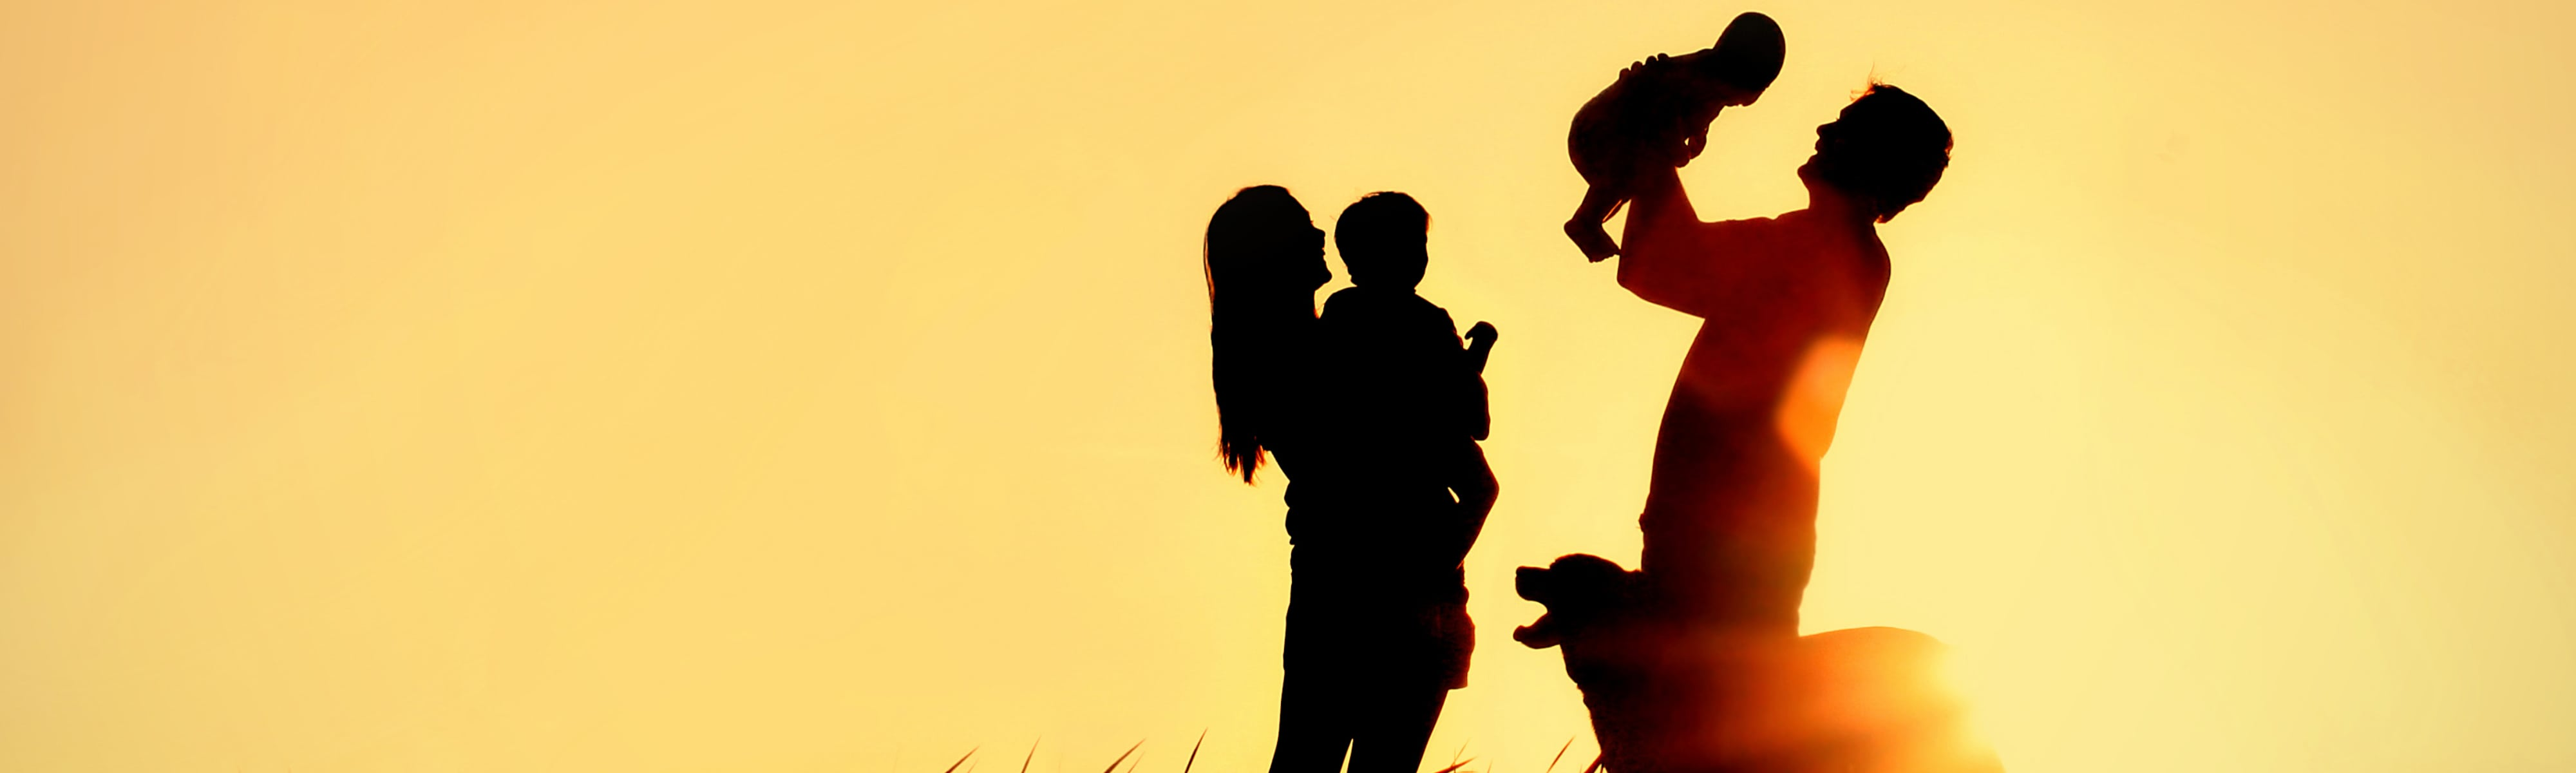 Silhouette of family at sunset.